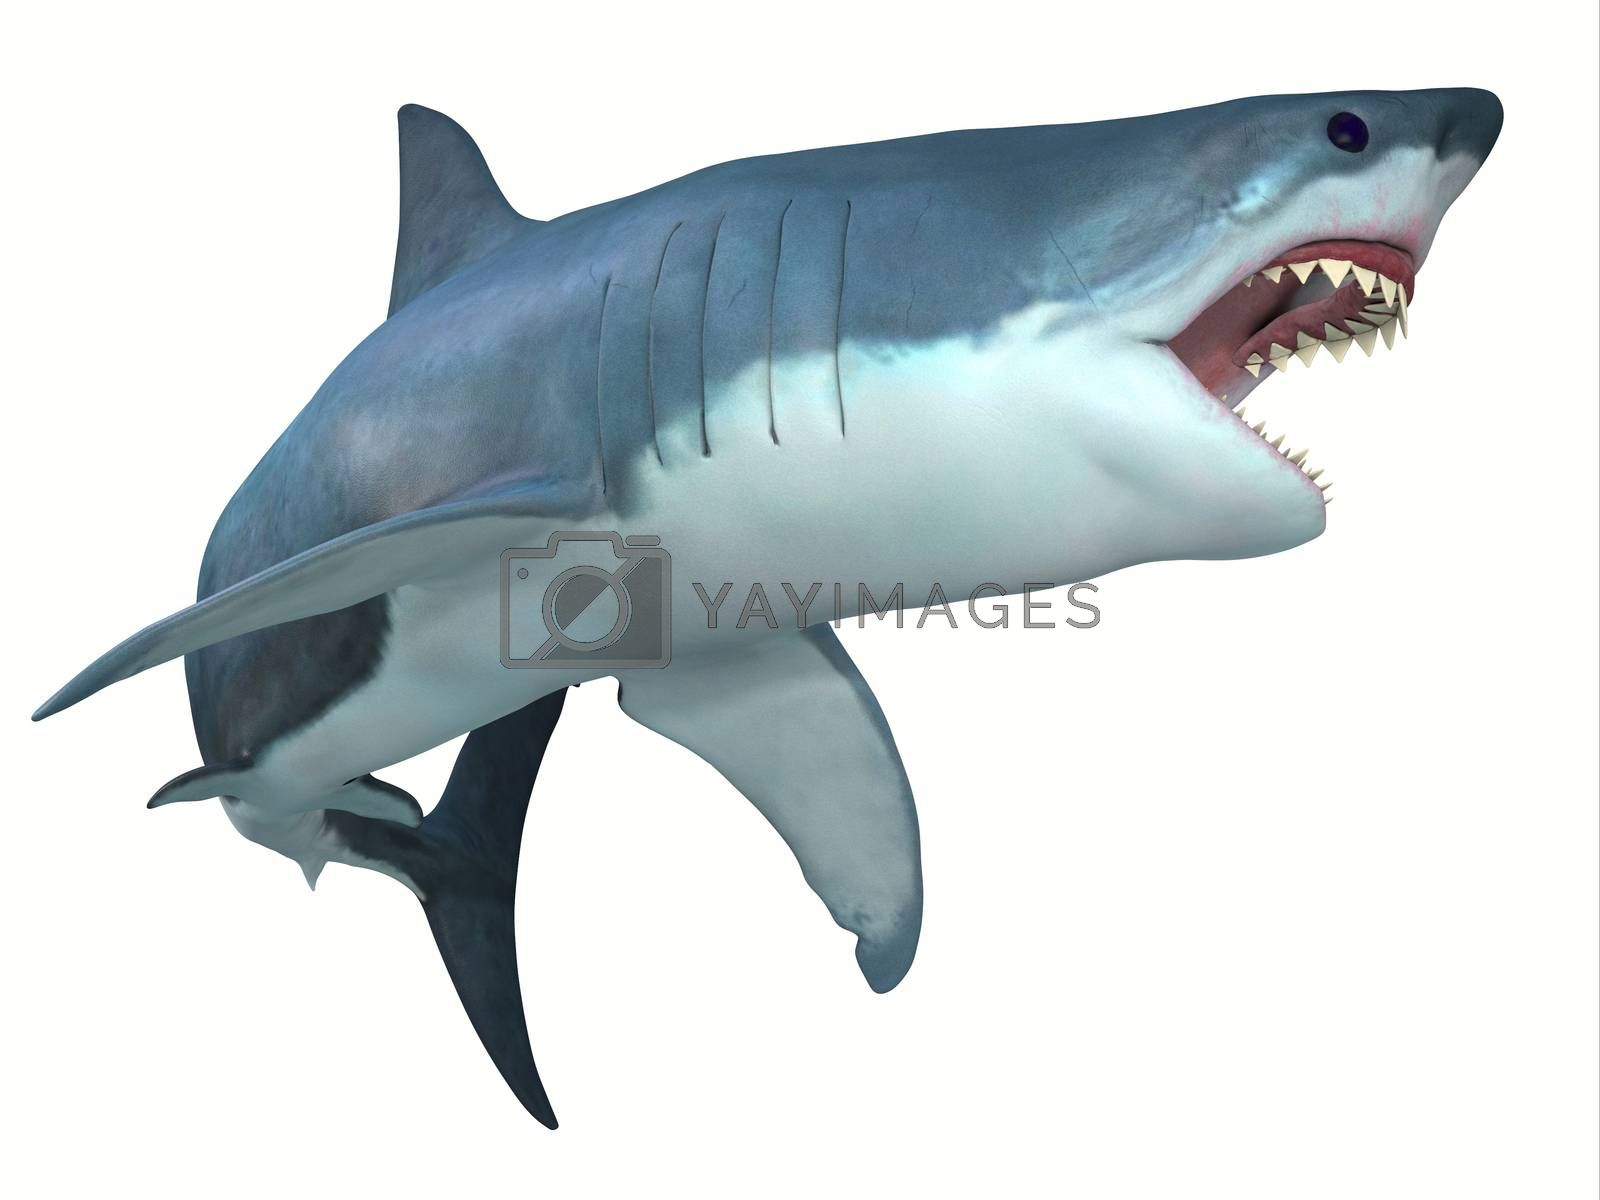 The Great White shark can live for 70 years and grow to be 21 feet long and live in coastal surface waters.